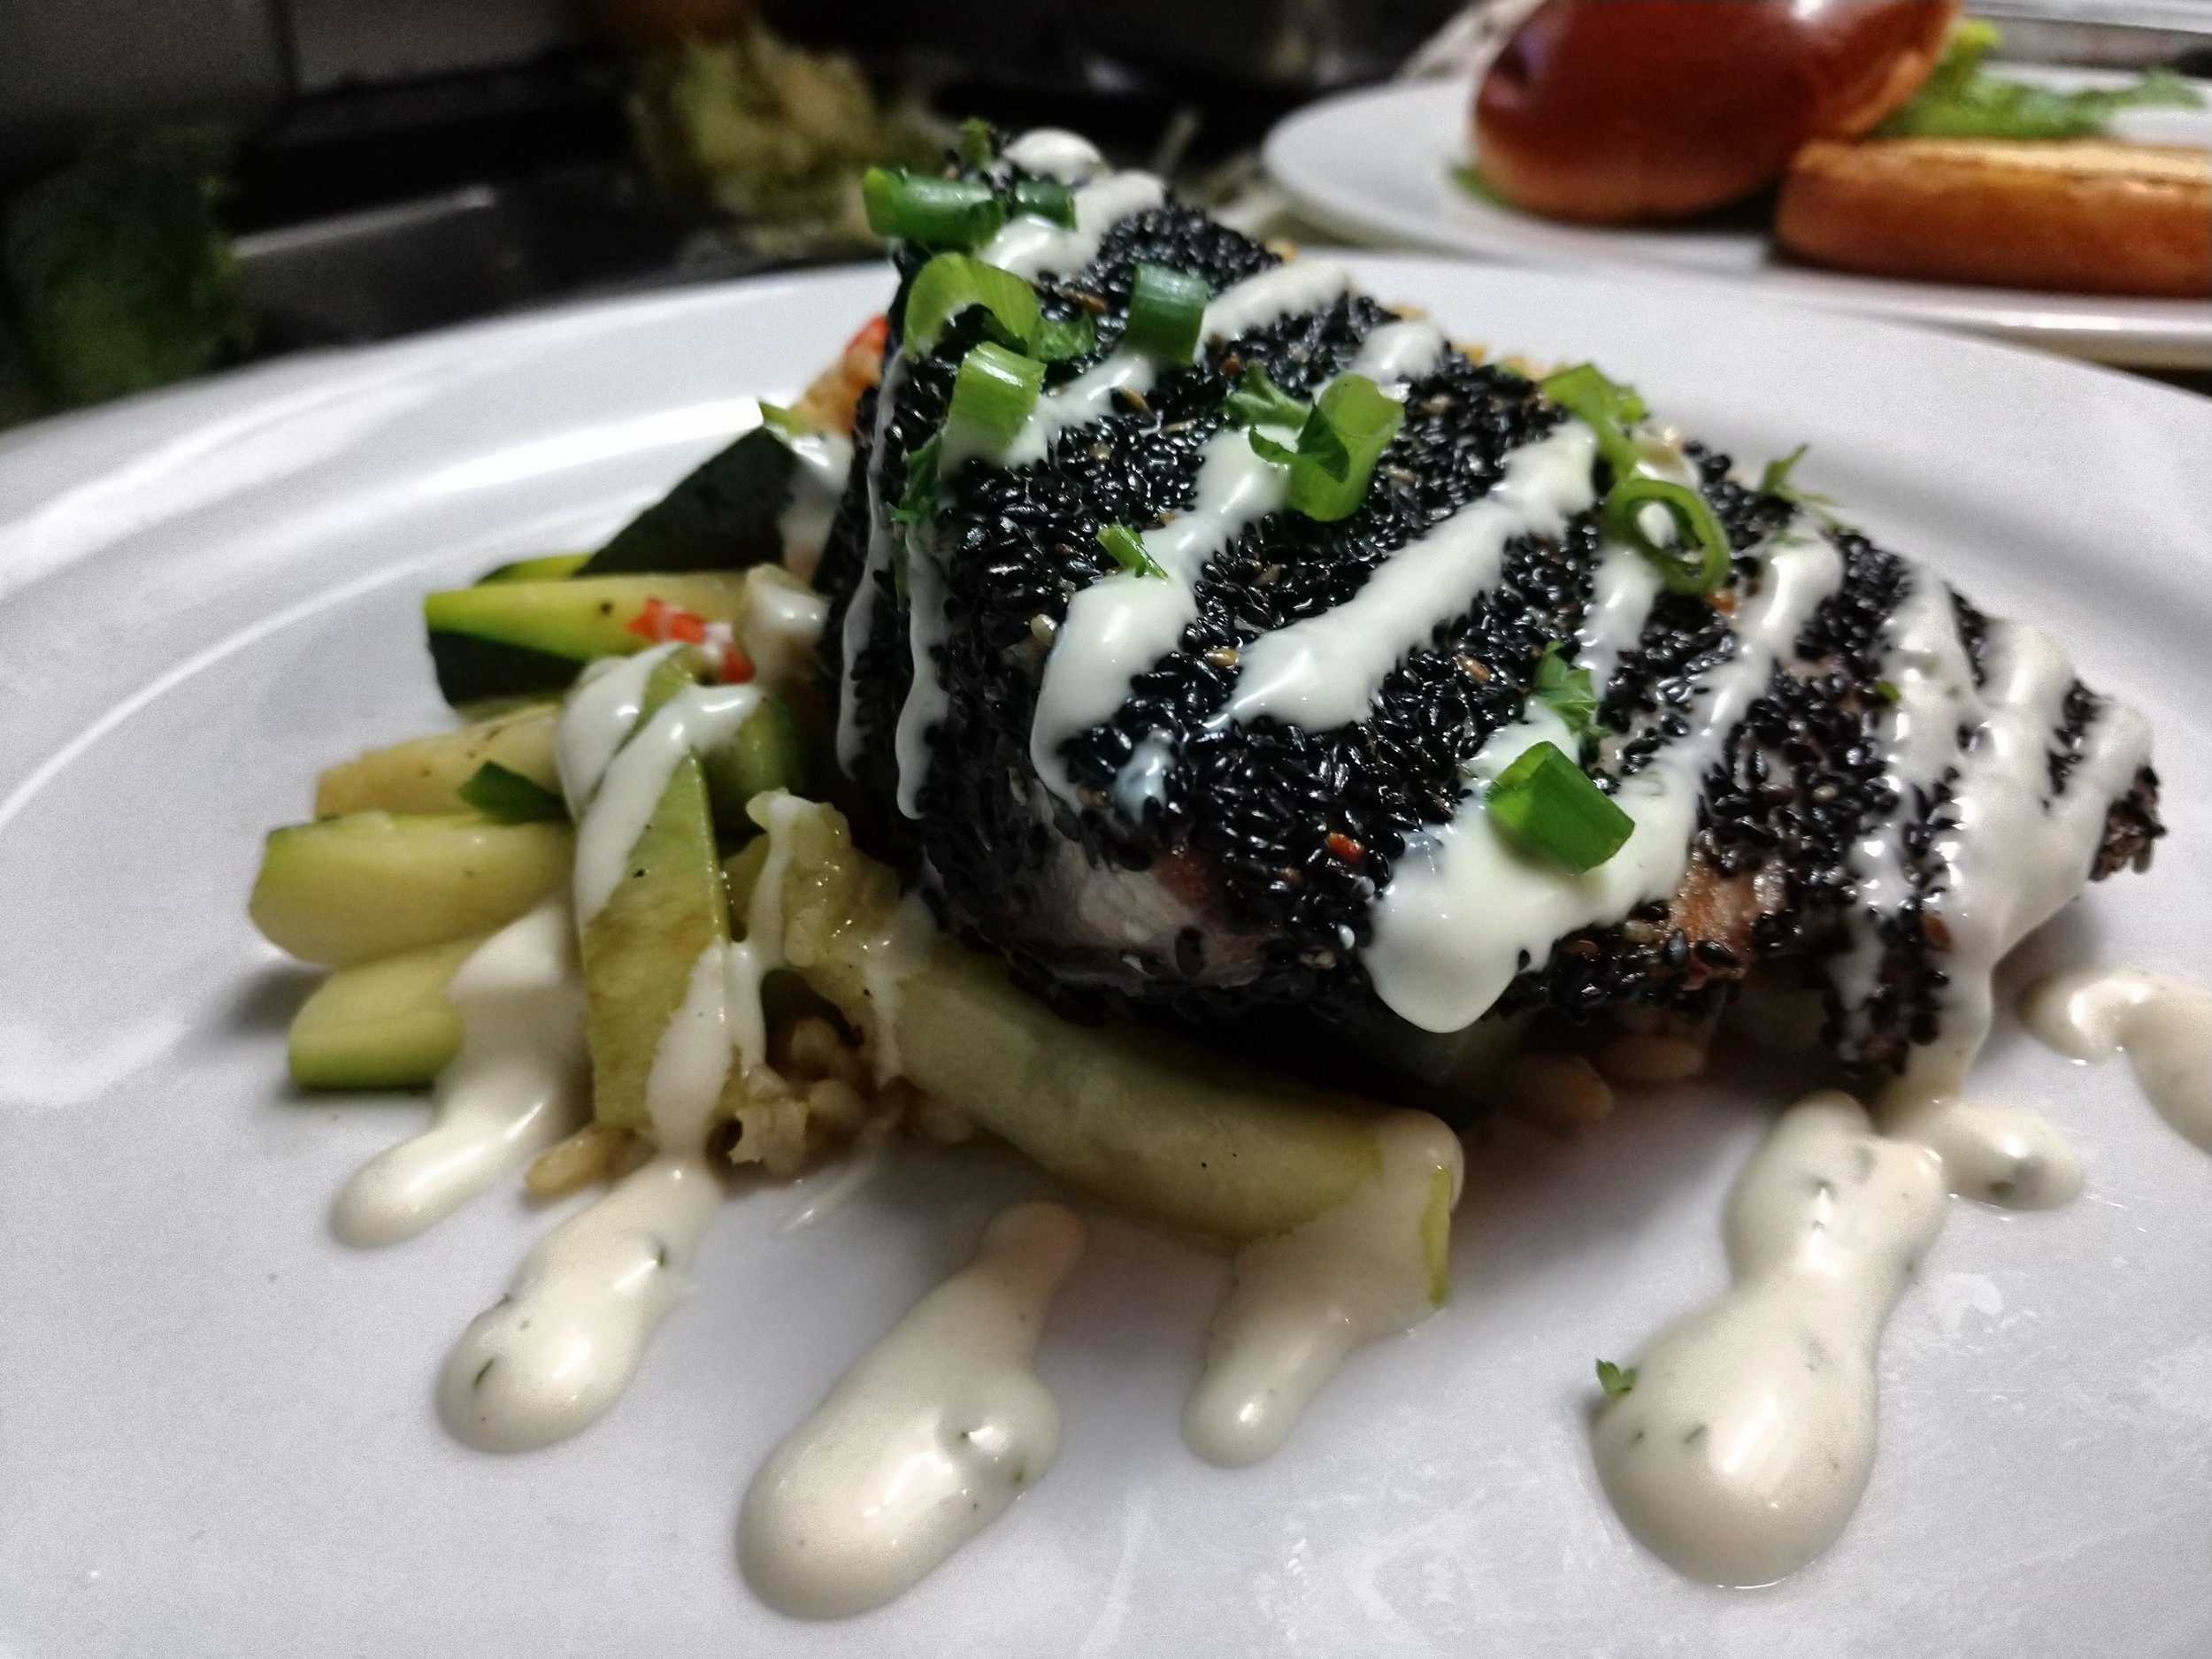 Sesame crusted fresh catch with Wasabi, served with grilled vegetables